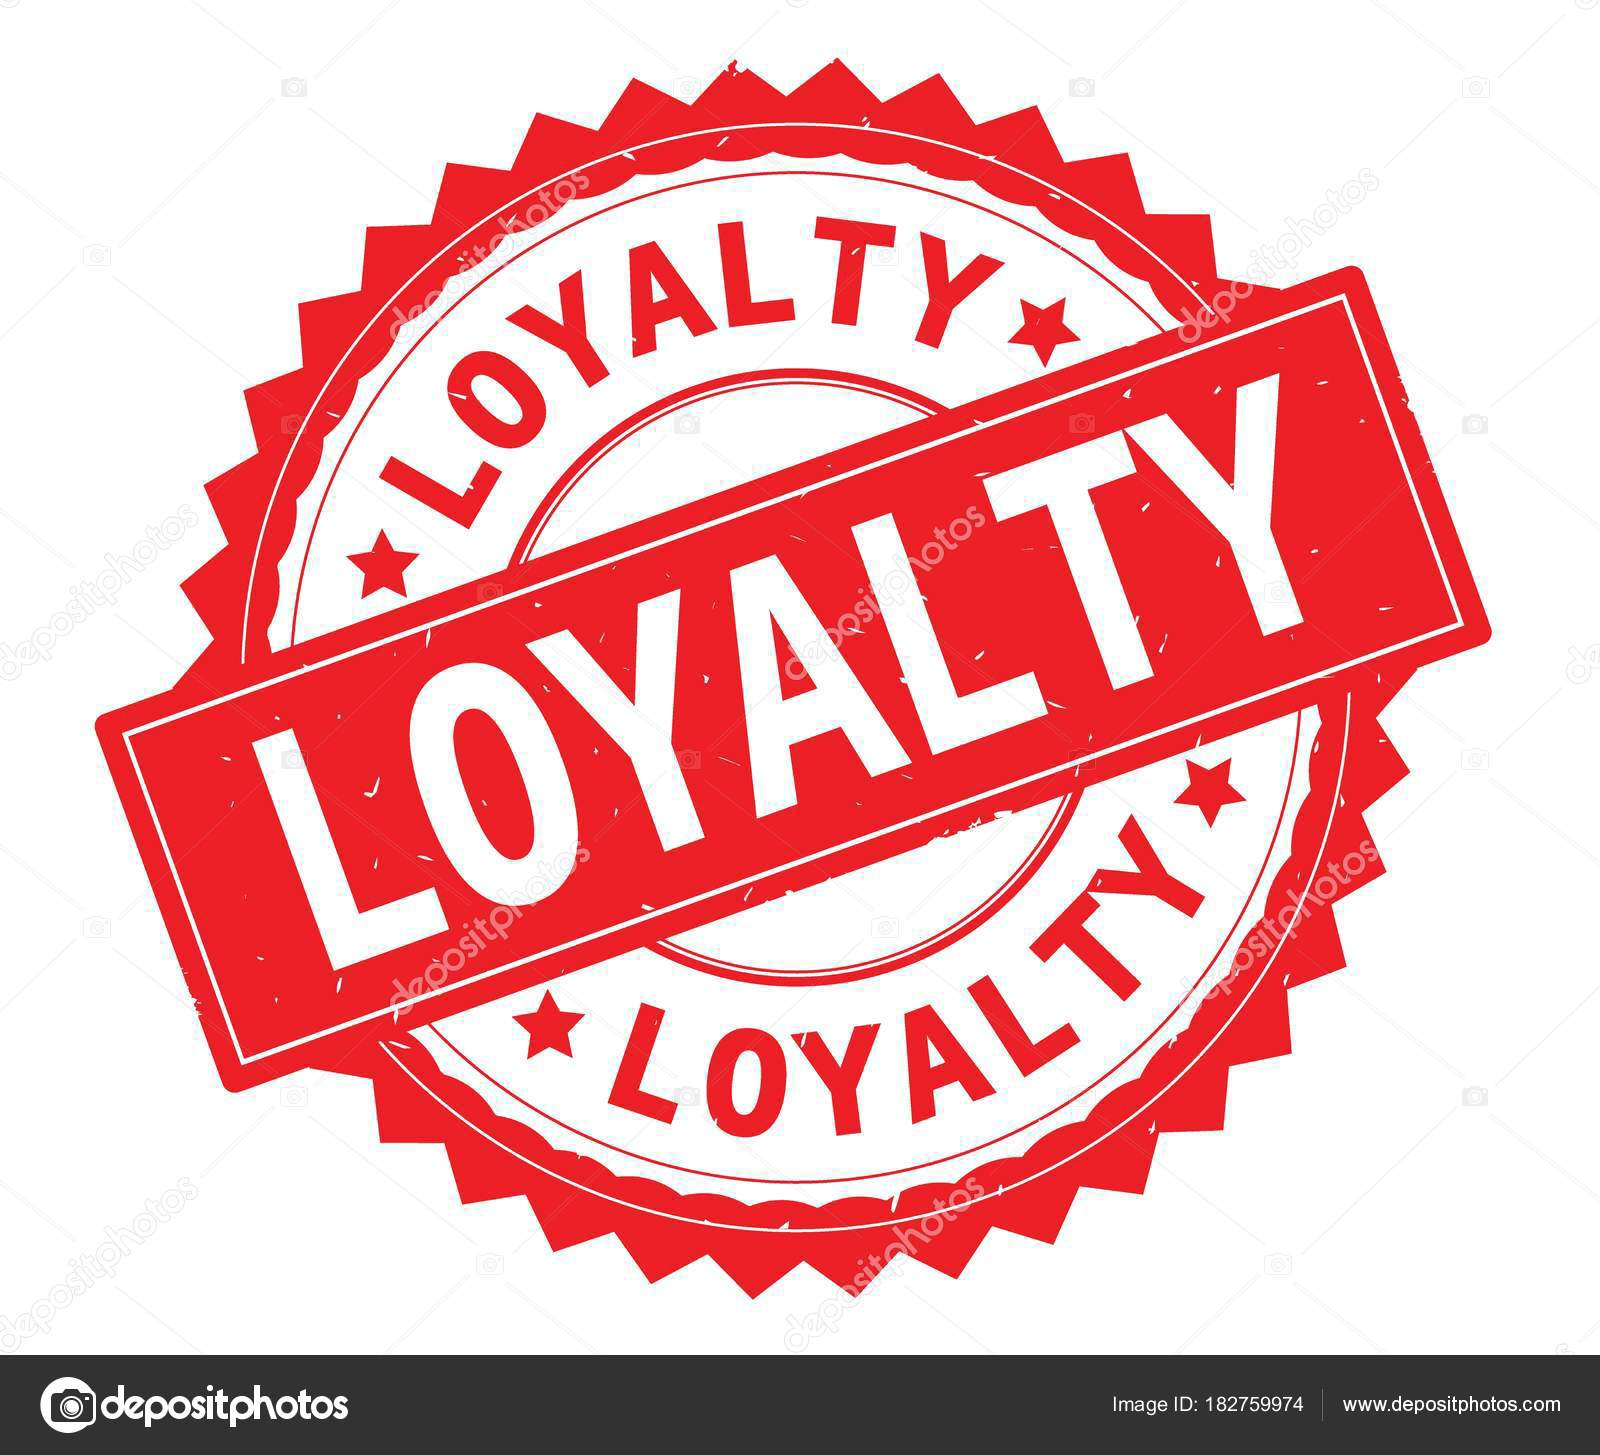 LOYALTY Red Text Round Stamp With Zig Zag Border Stock Photo